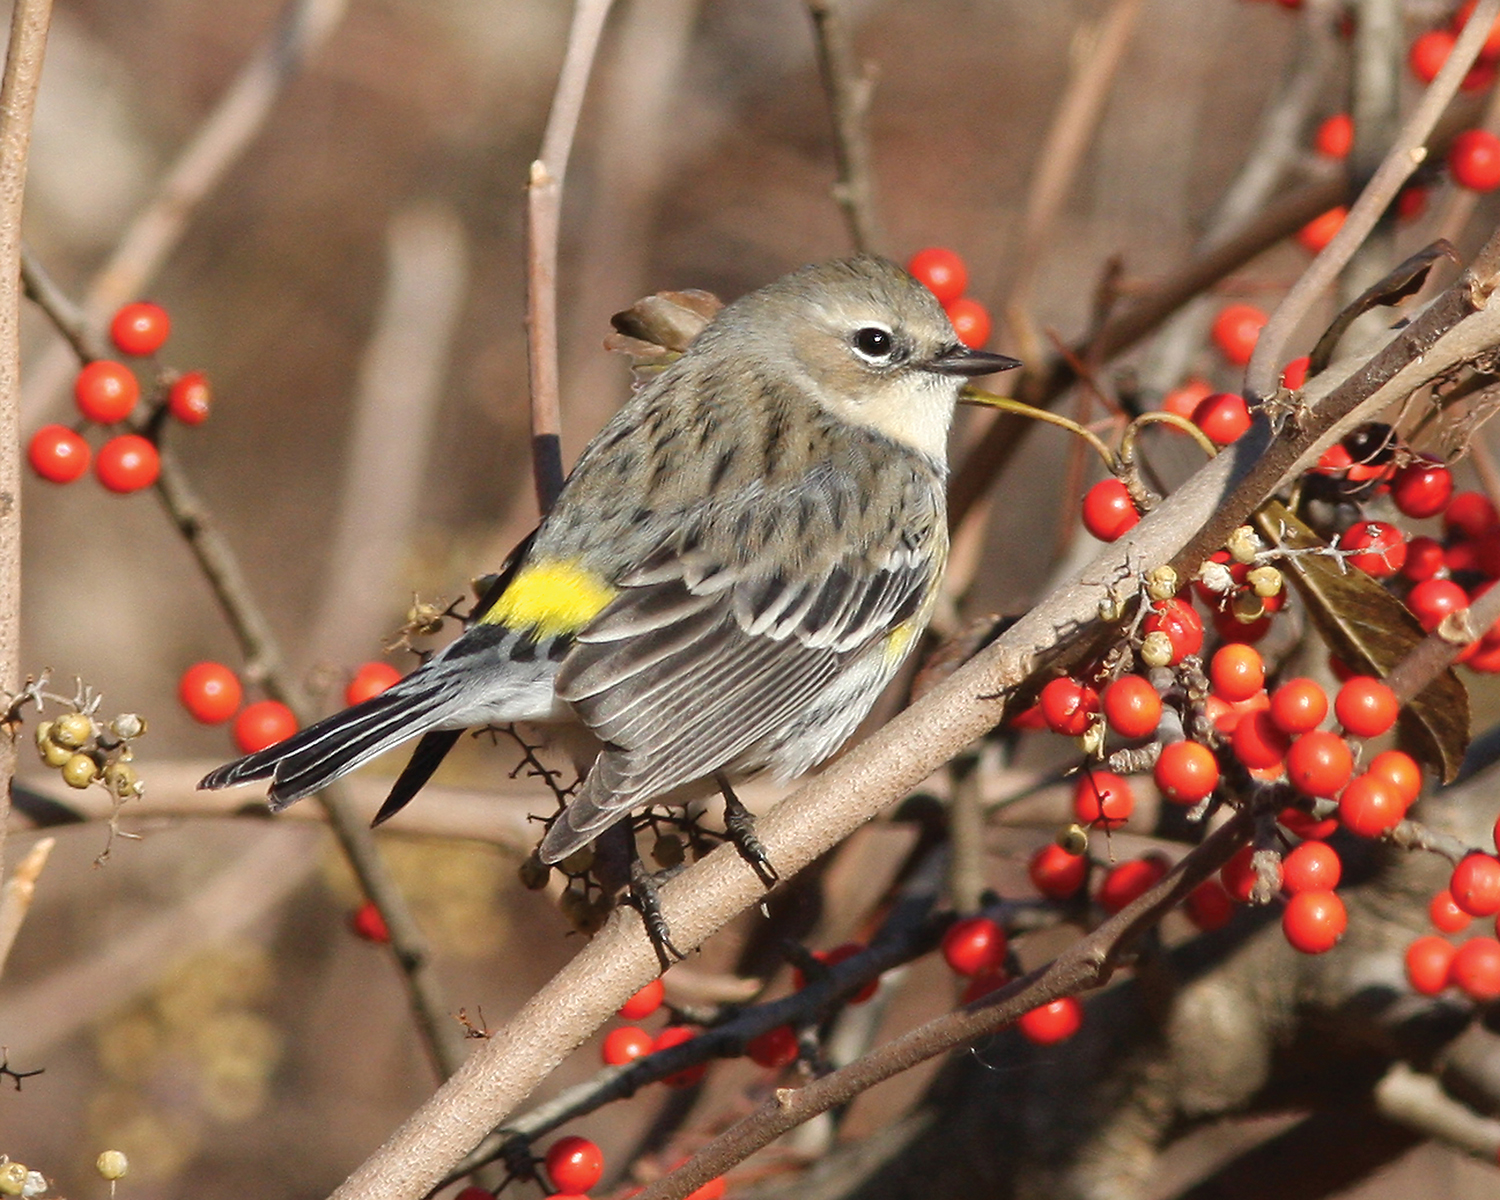 Yellow-rumped warbler; taken at the Governor Mike Huckabee Nature Center, Pine Bluff.